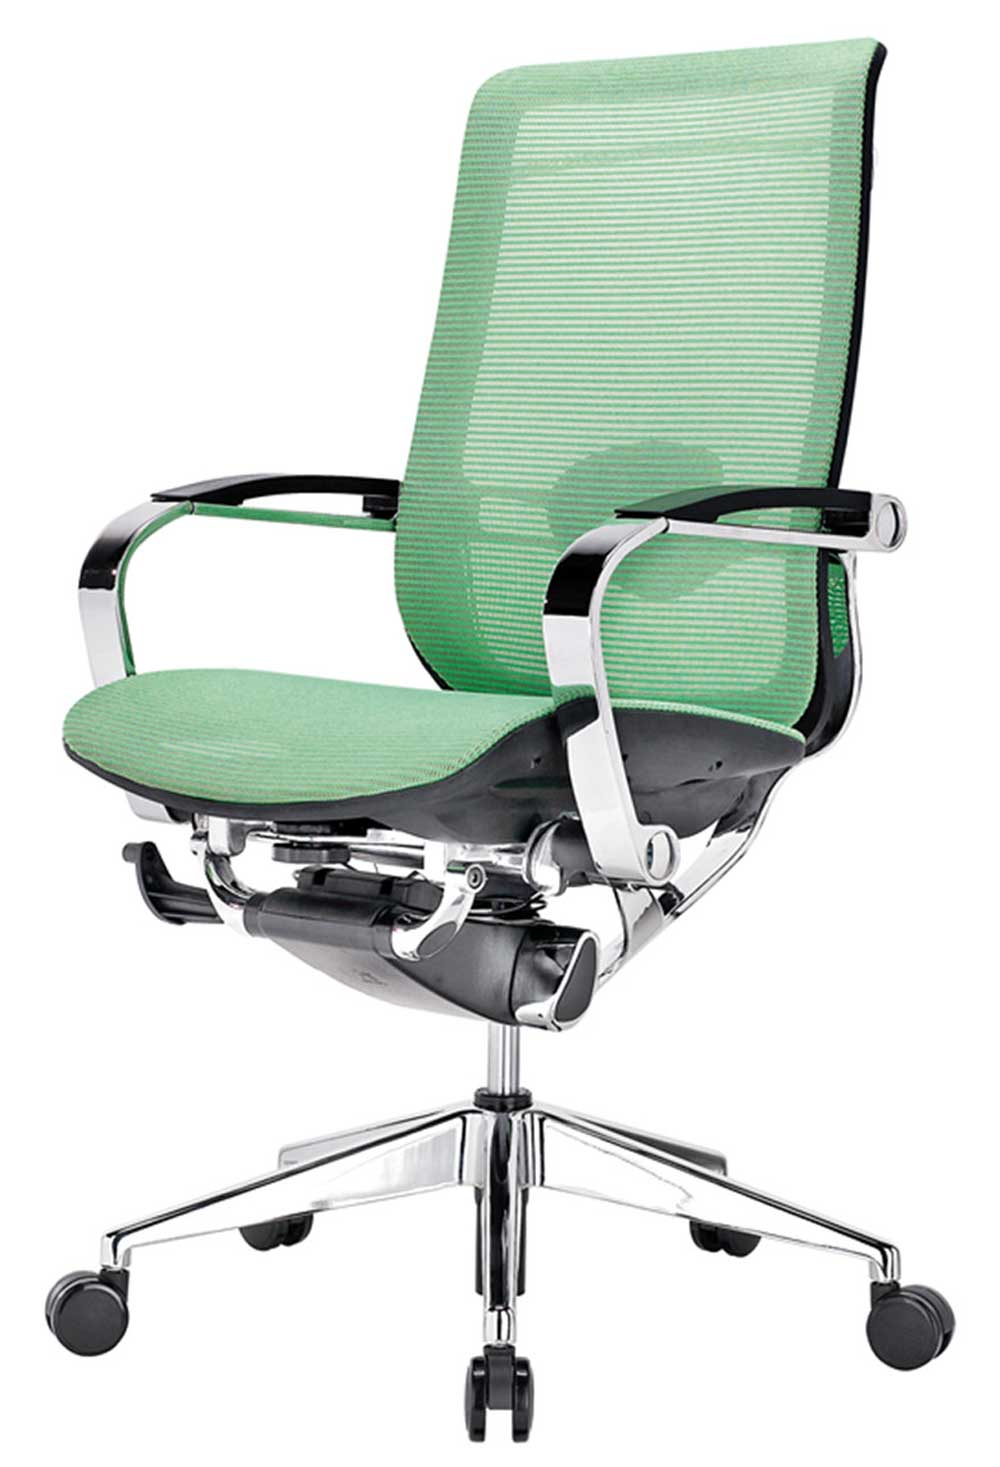 Adjustable height high back green mesh office chair